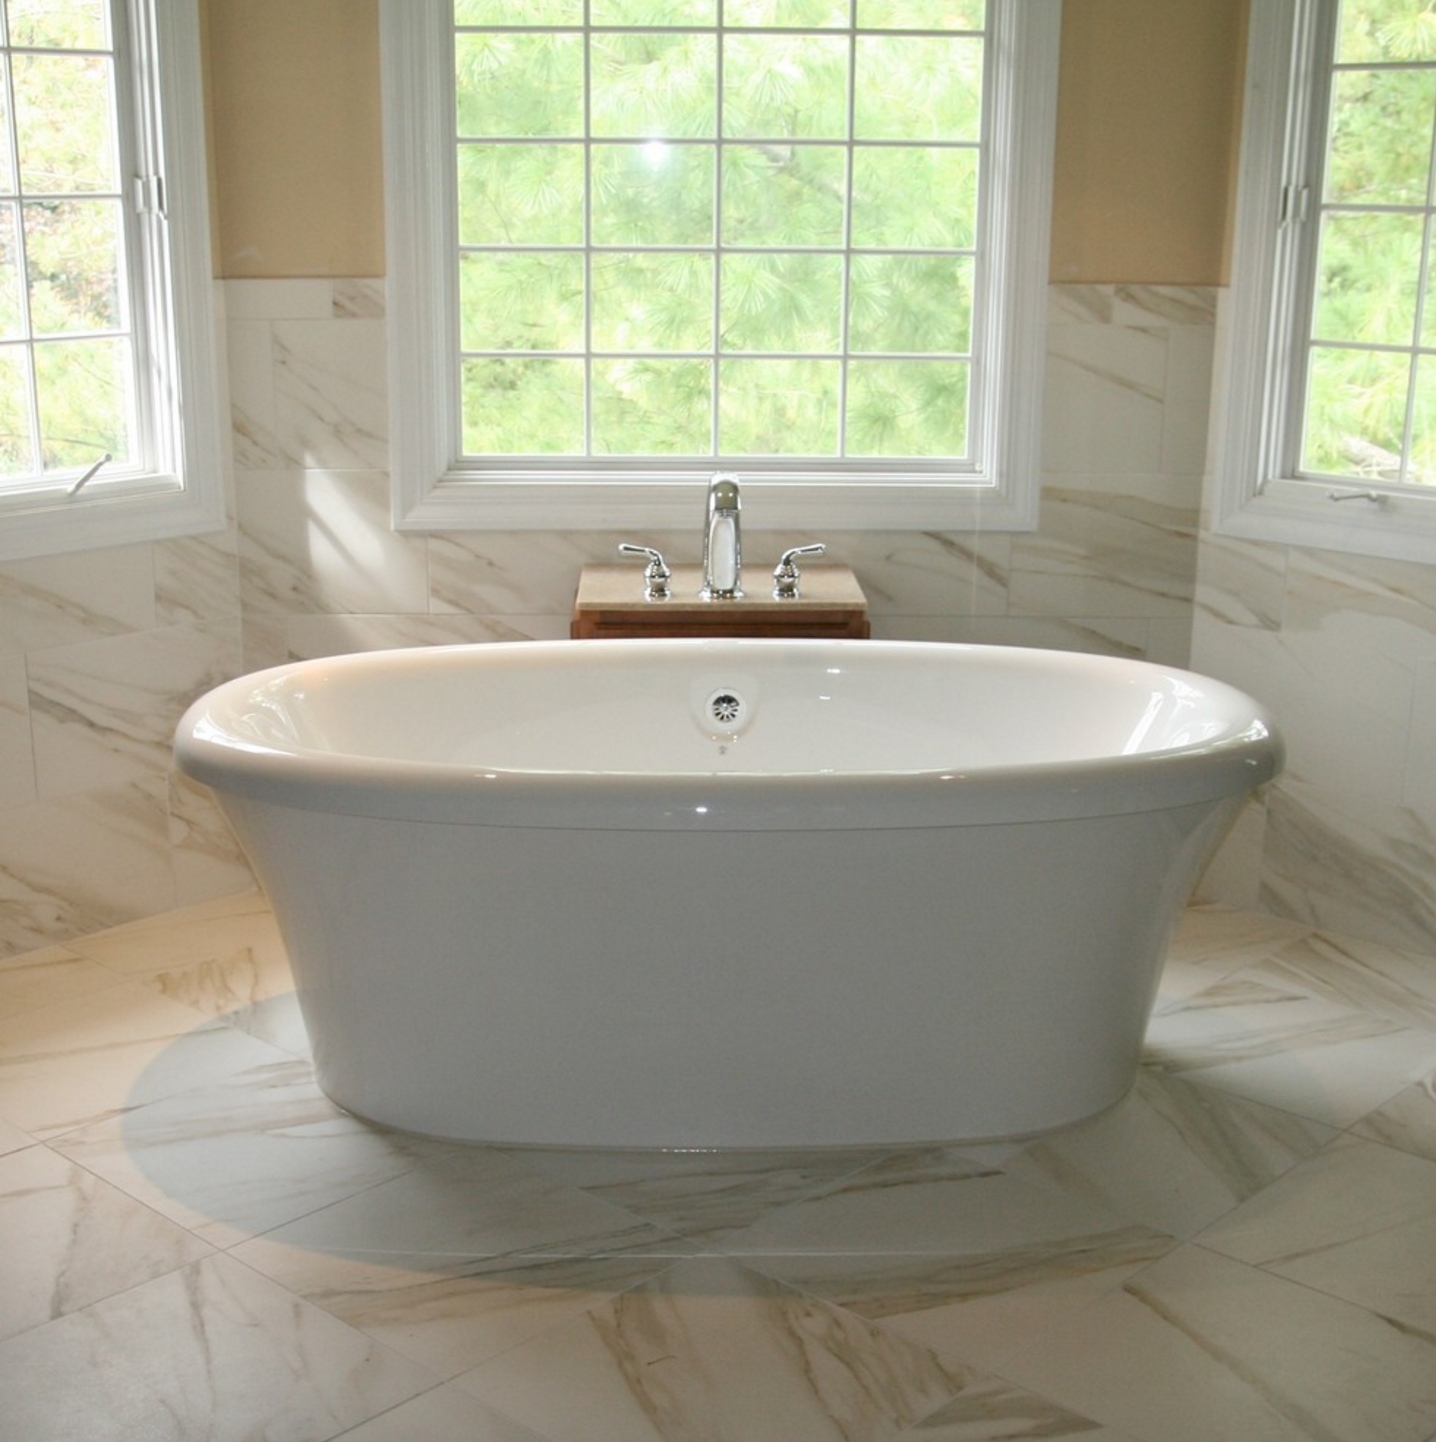 Discover Our Therapeutic Bathtubs, Like This One, The